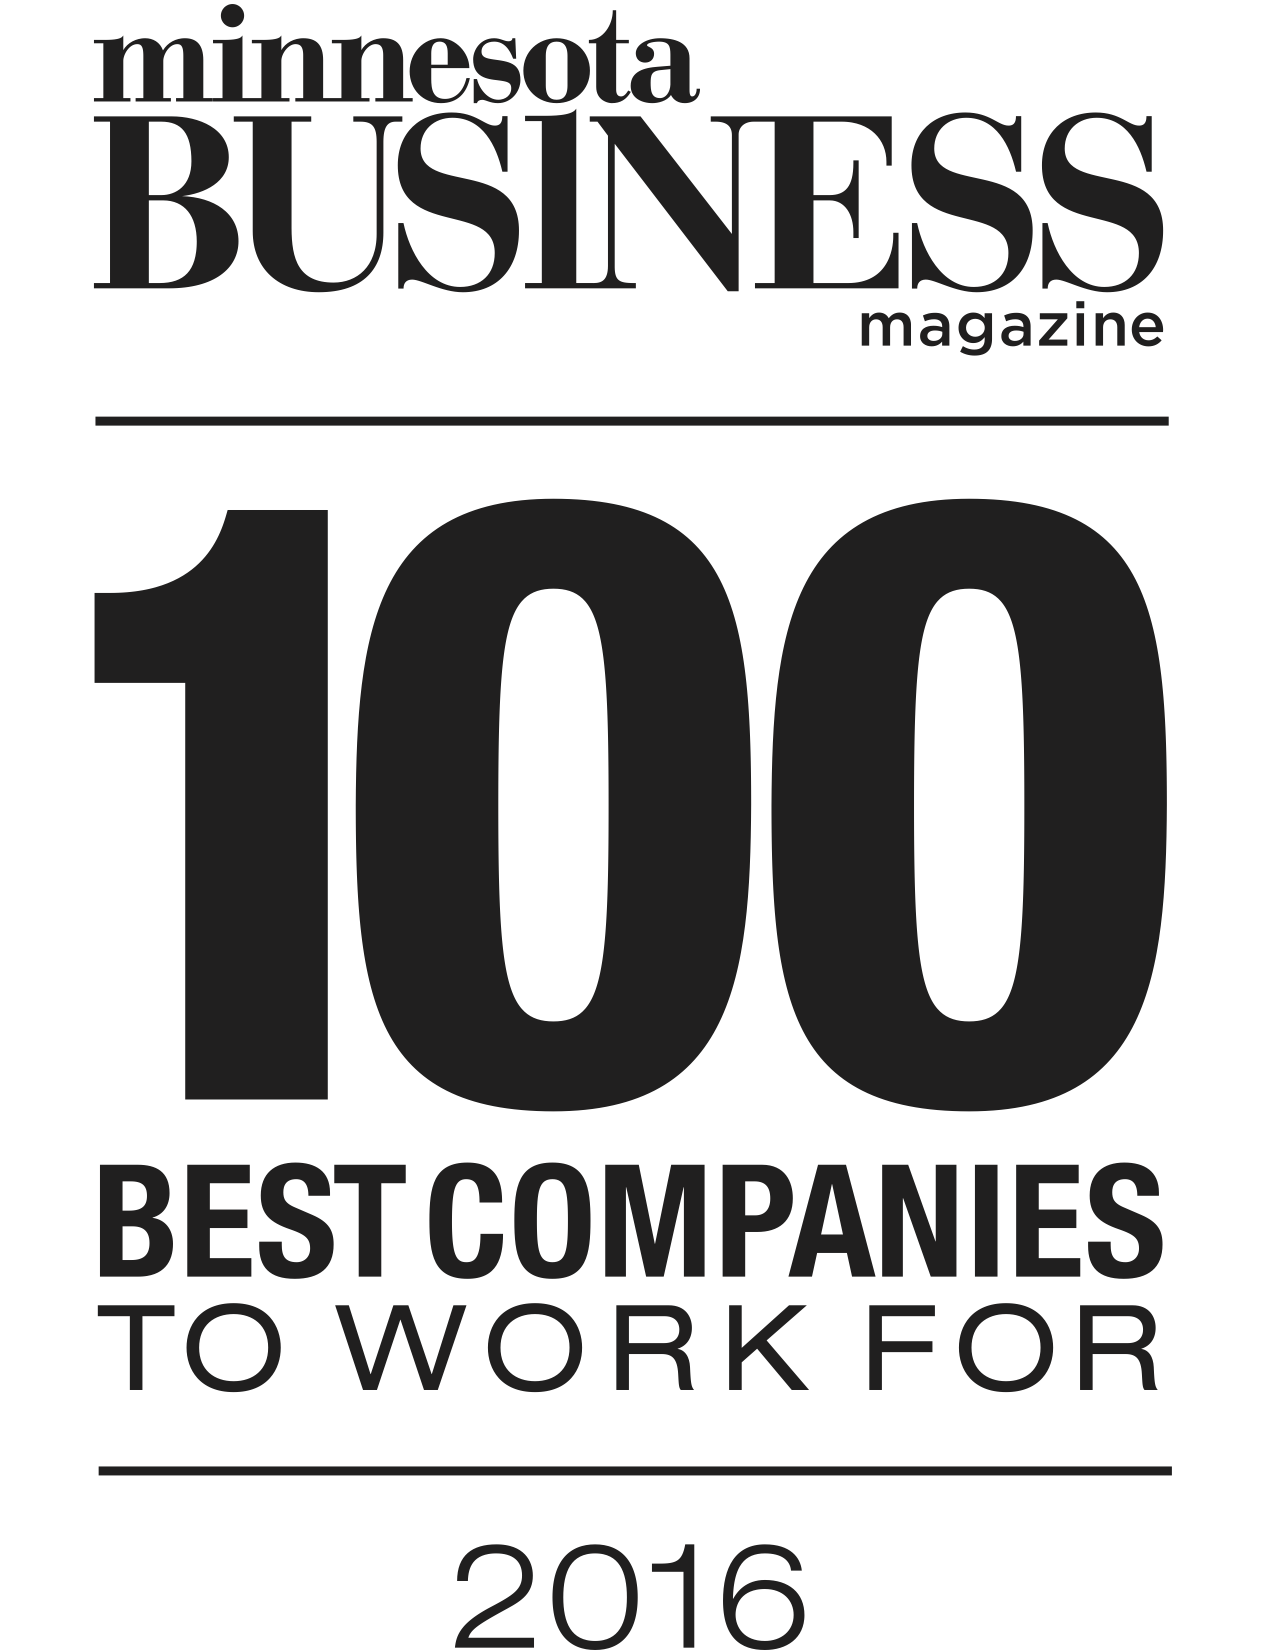 AK Material Handling Systems Named a 2016 Top 100 Company to Work For